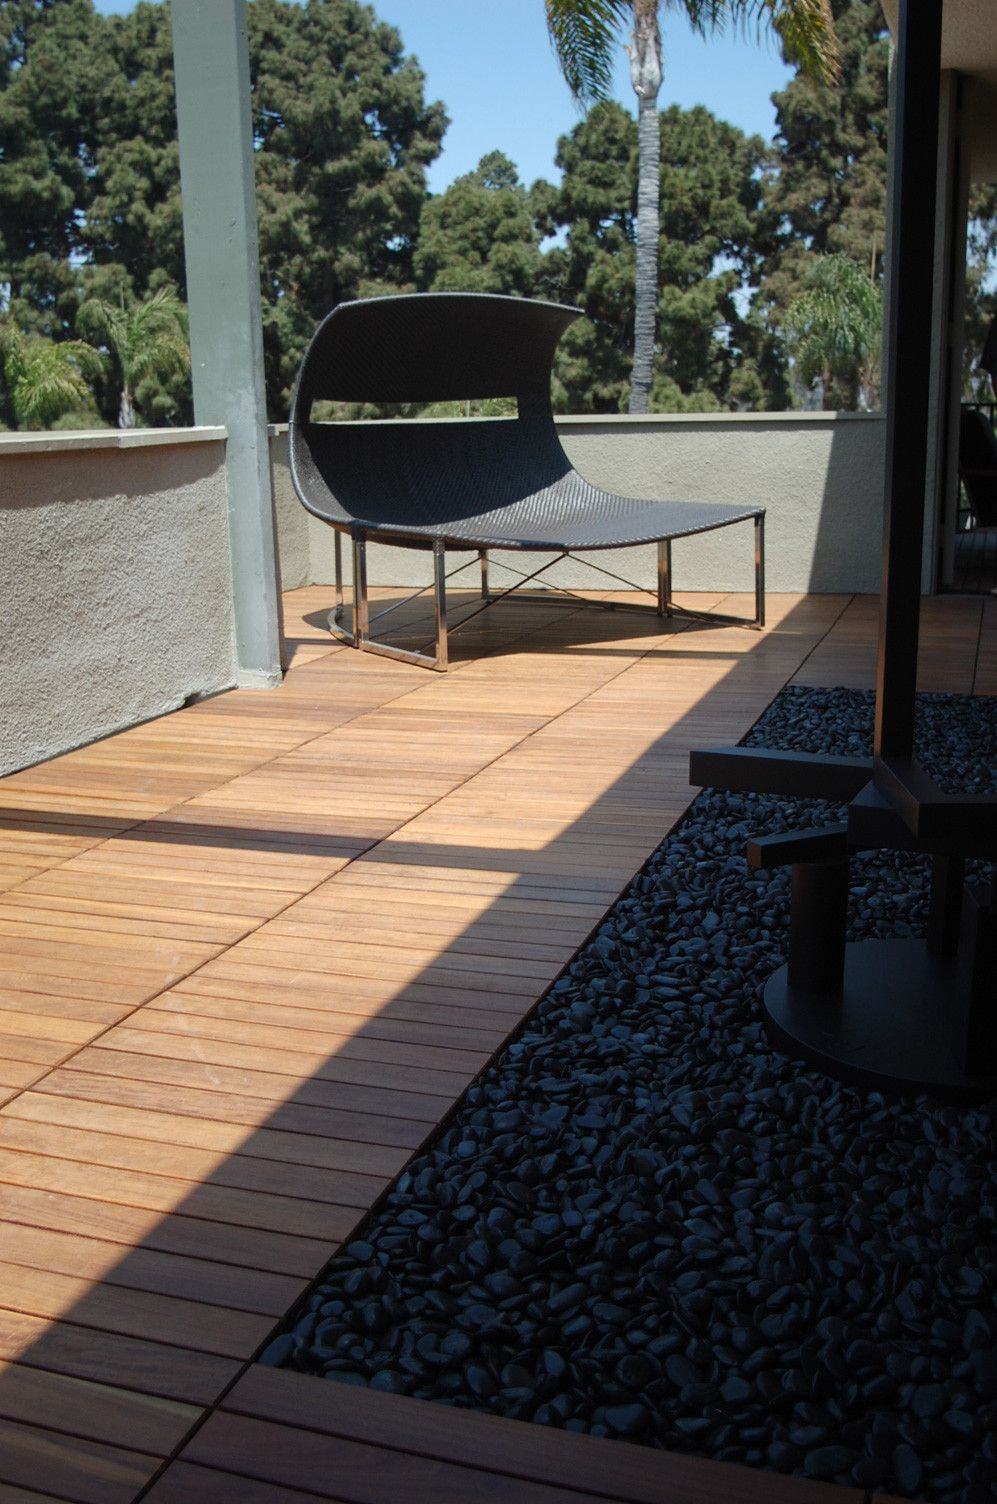 Engineered stone paving tile for outdoor floors cloisters engineered stone paving tile for outdoor floors cloisters bradstone videos decorating ideas pinterest engineered stone stone and outdoor tiles baanklon Images